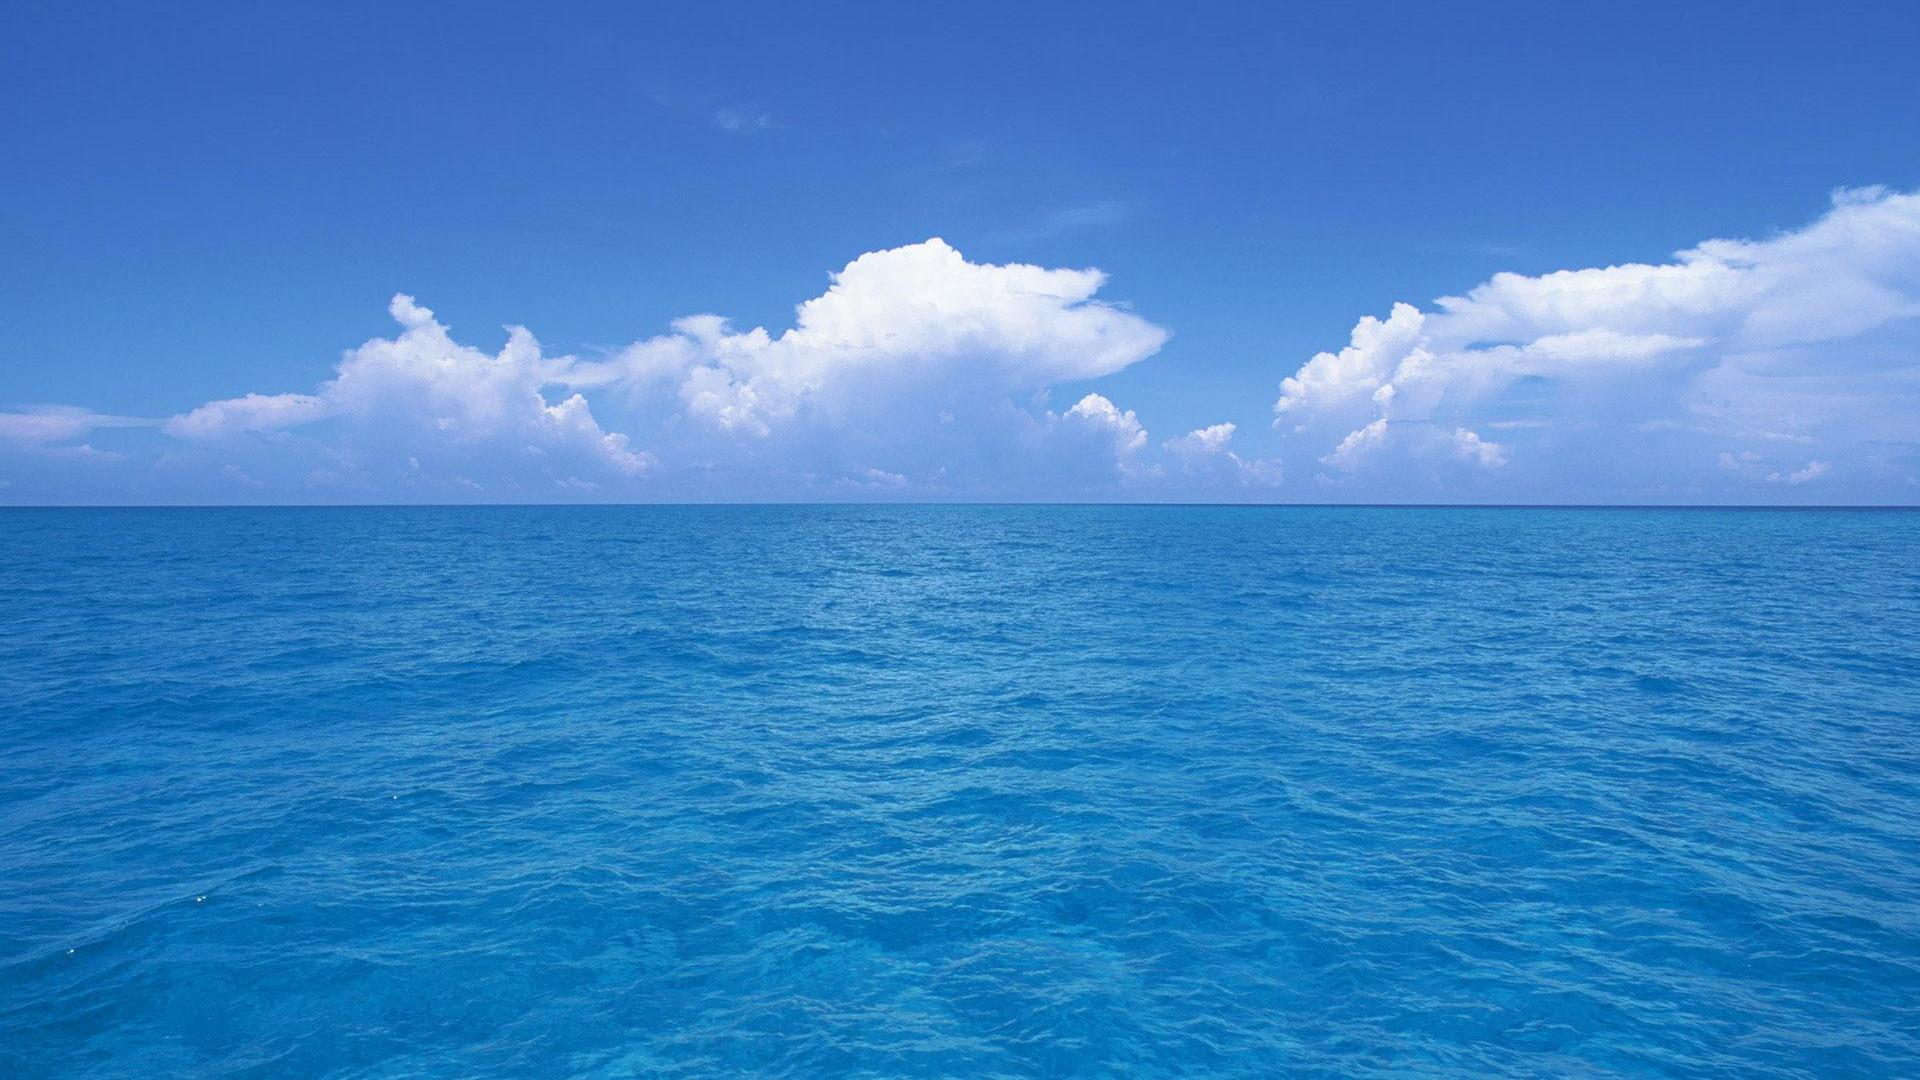 sea wallpaper 6jpg 1920x1080